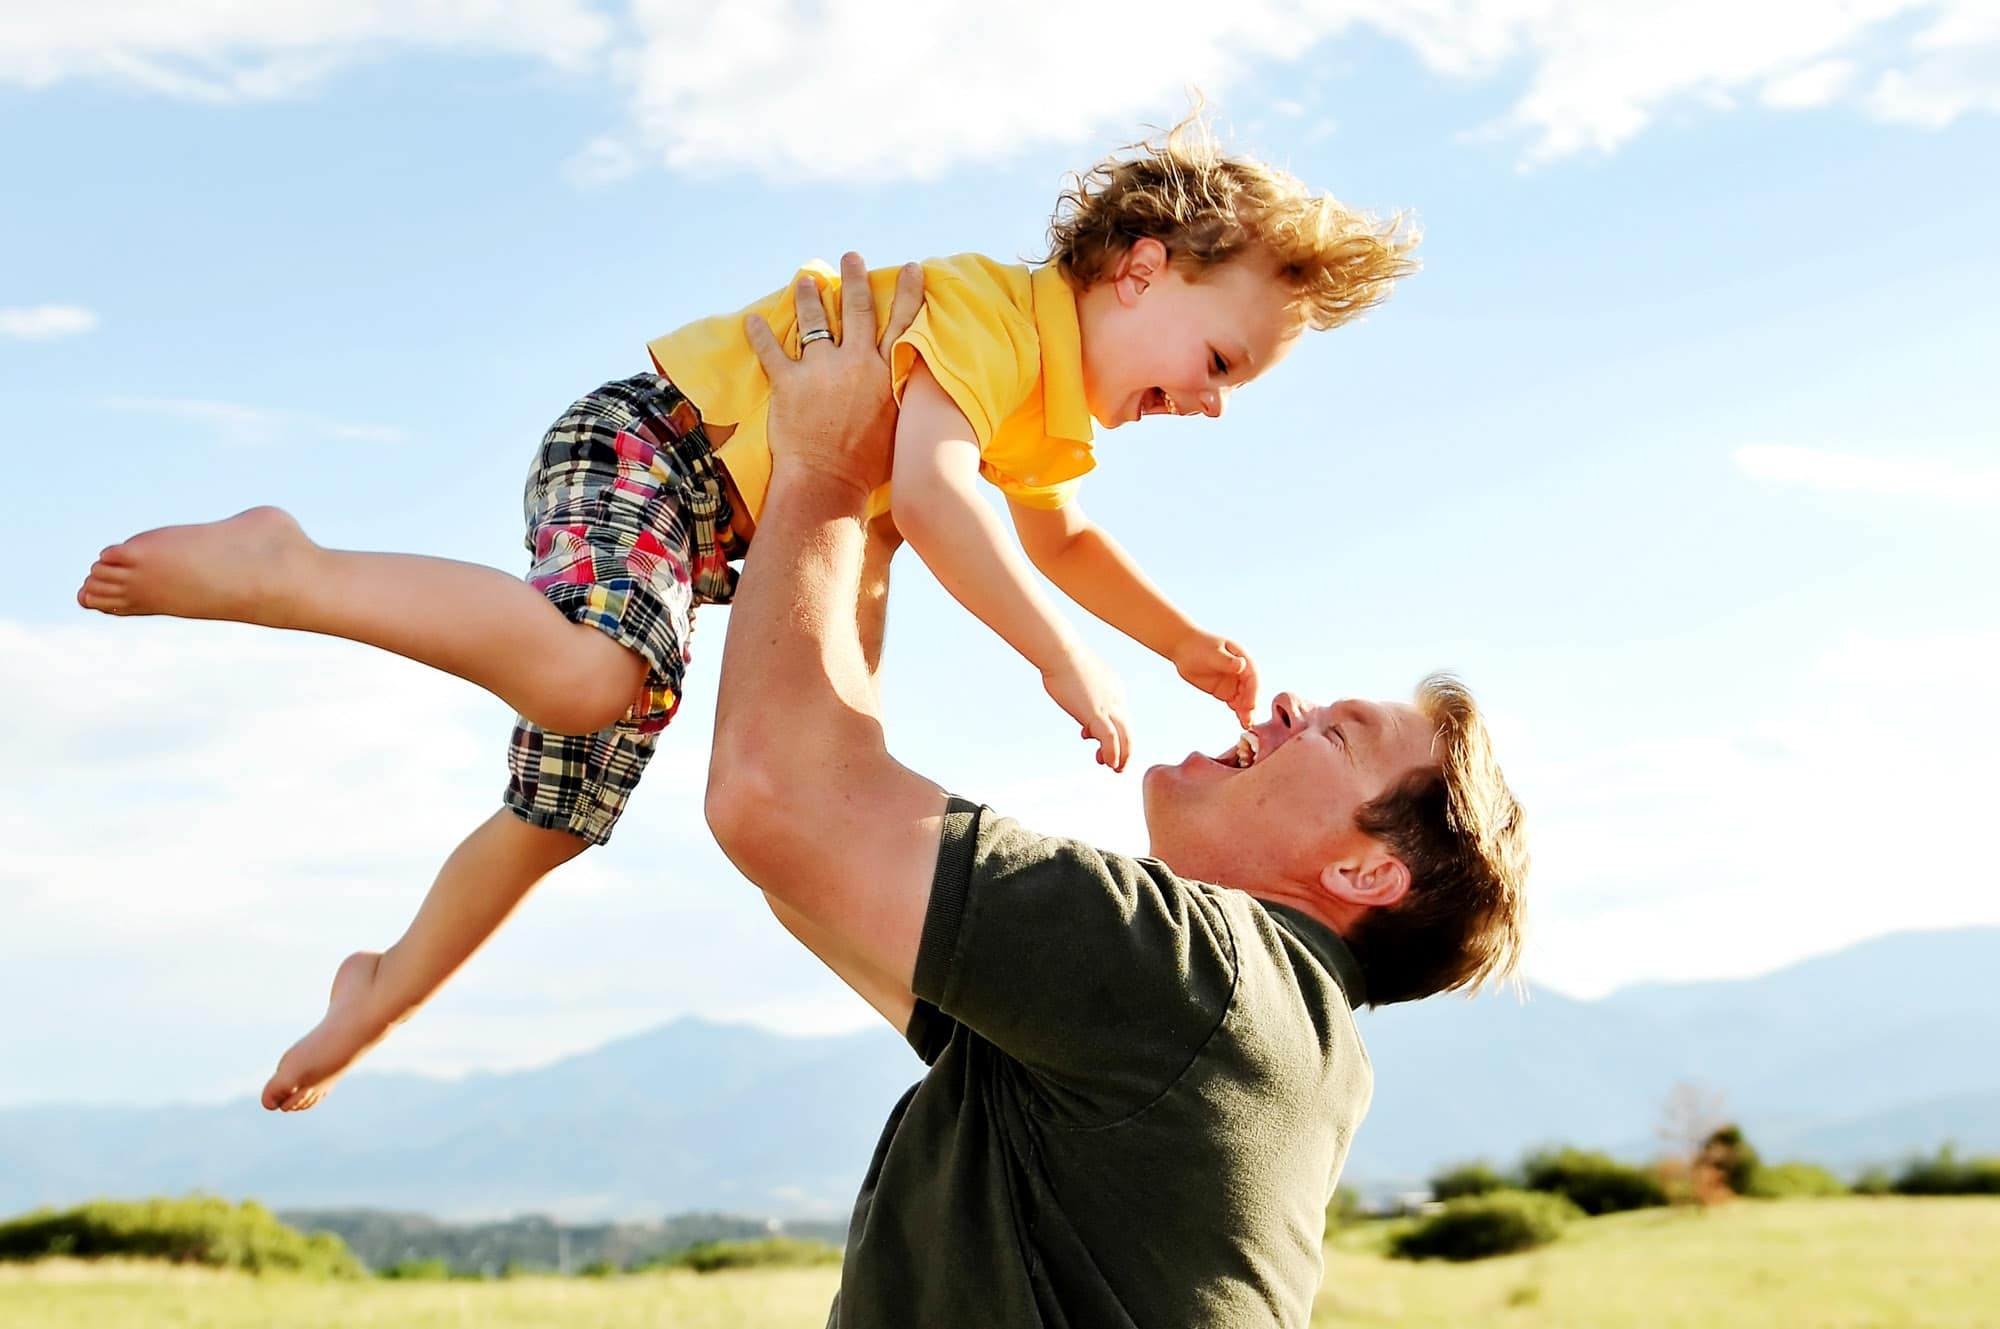 A family portrait of a father lifting his son in the air.